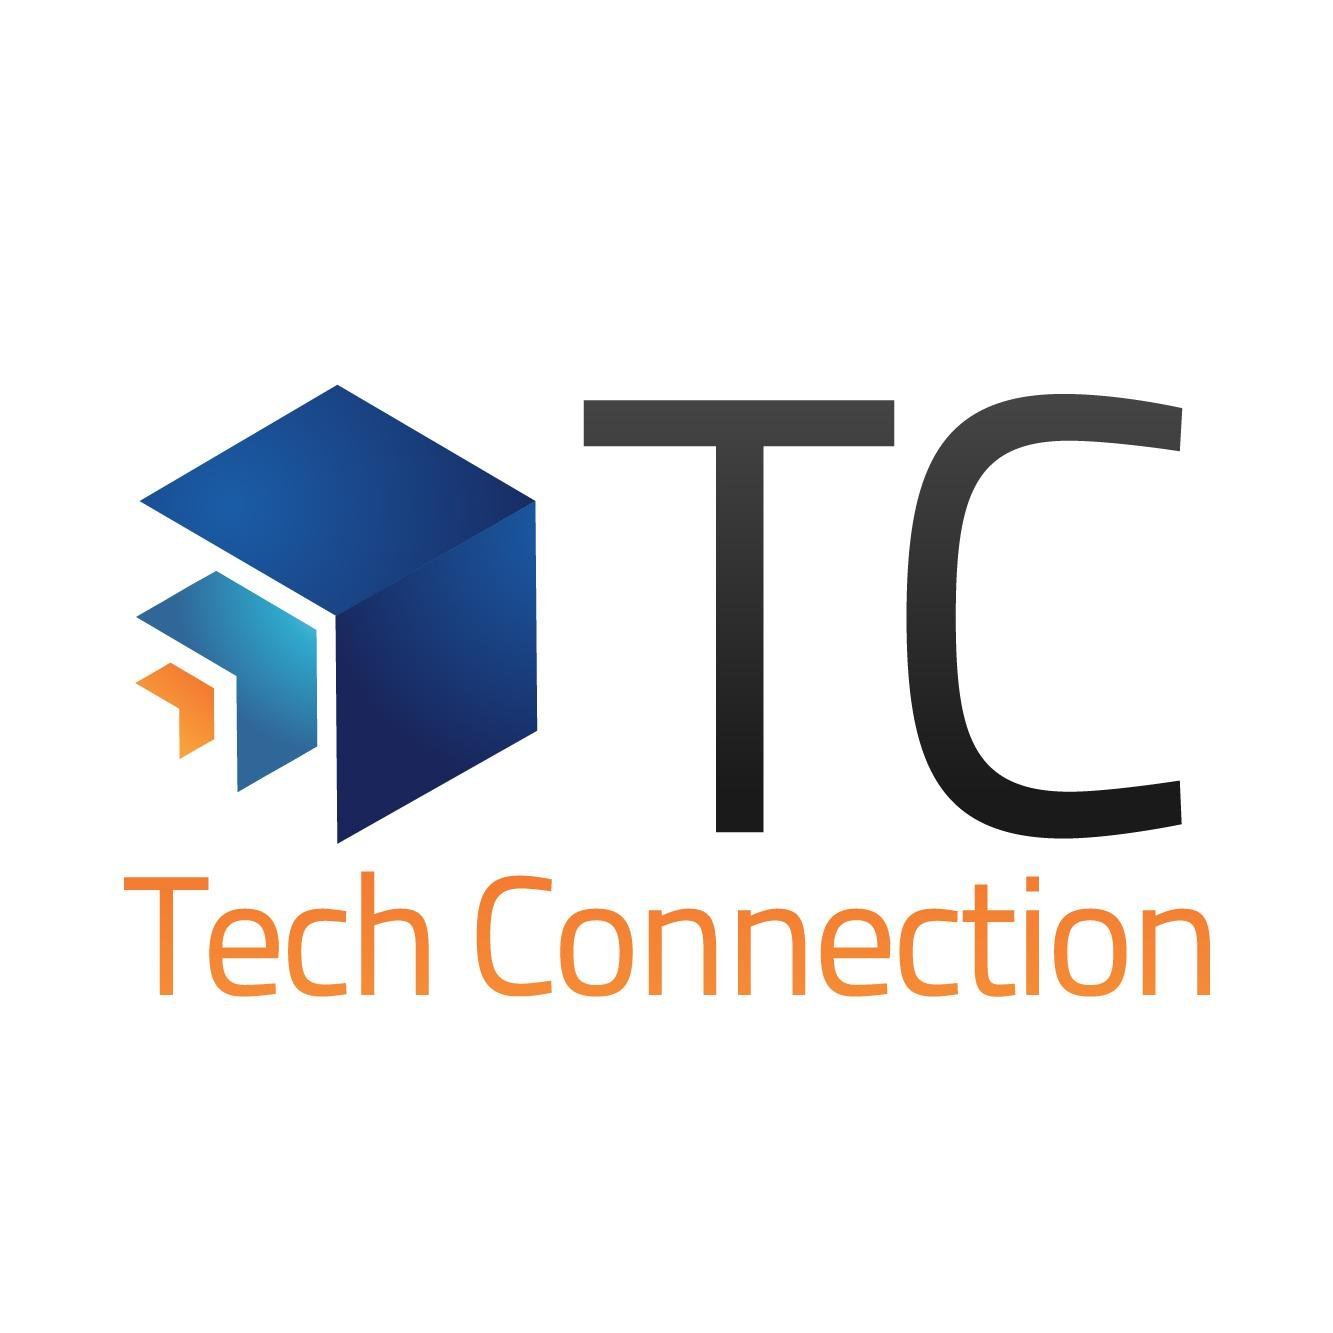 tech-connection-logo.jpeg